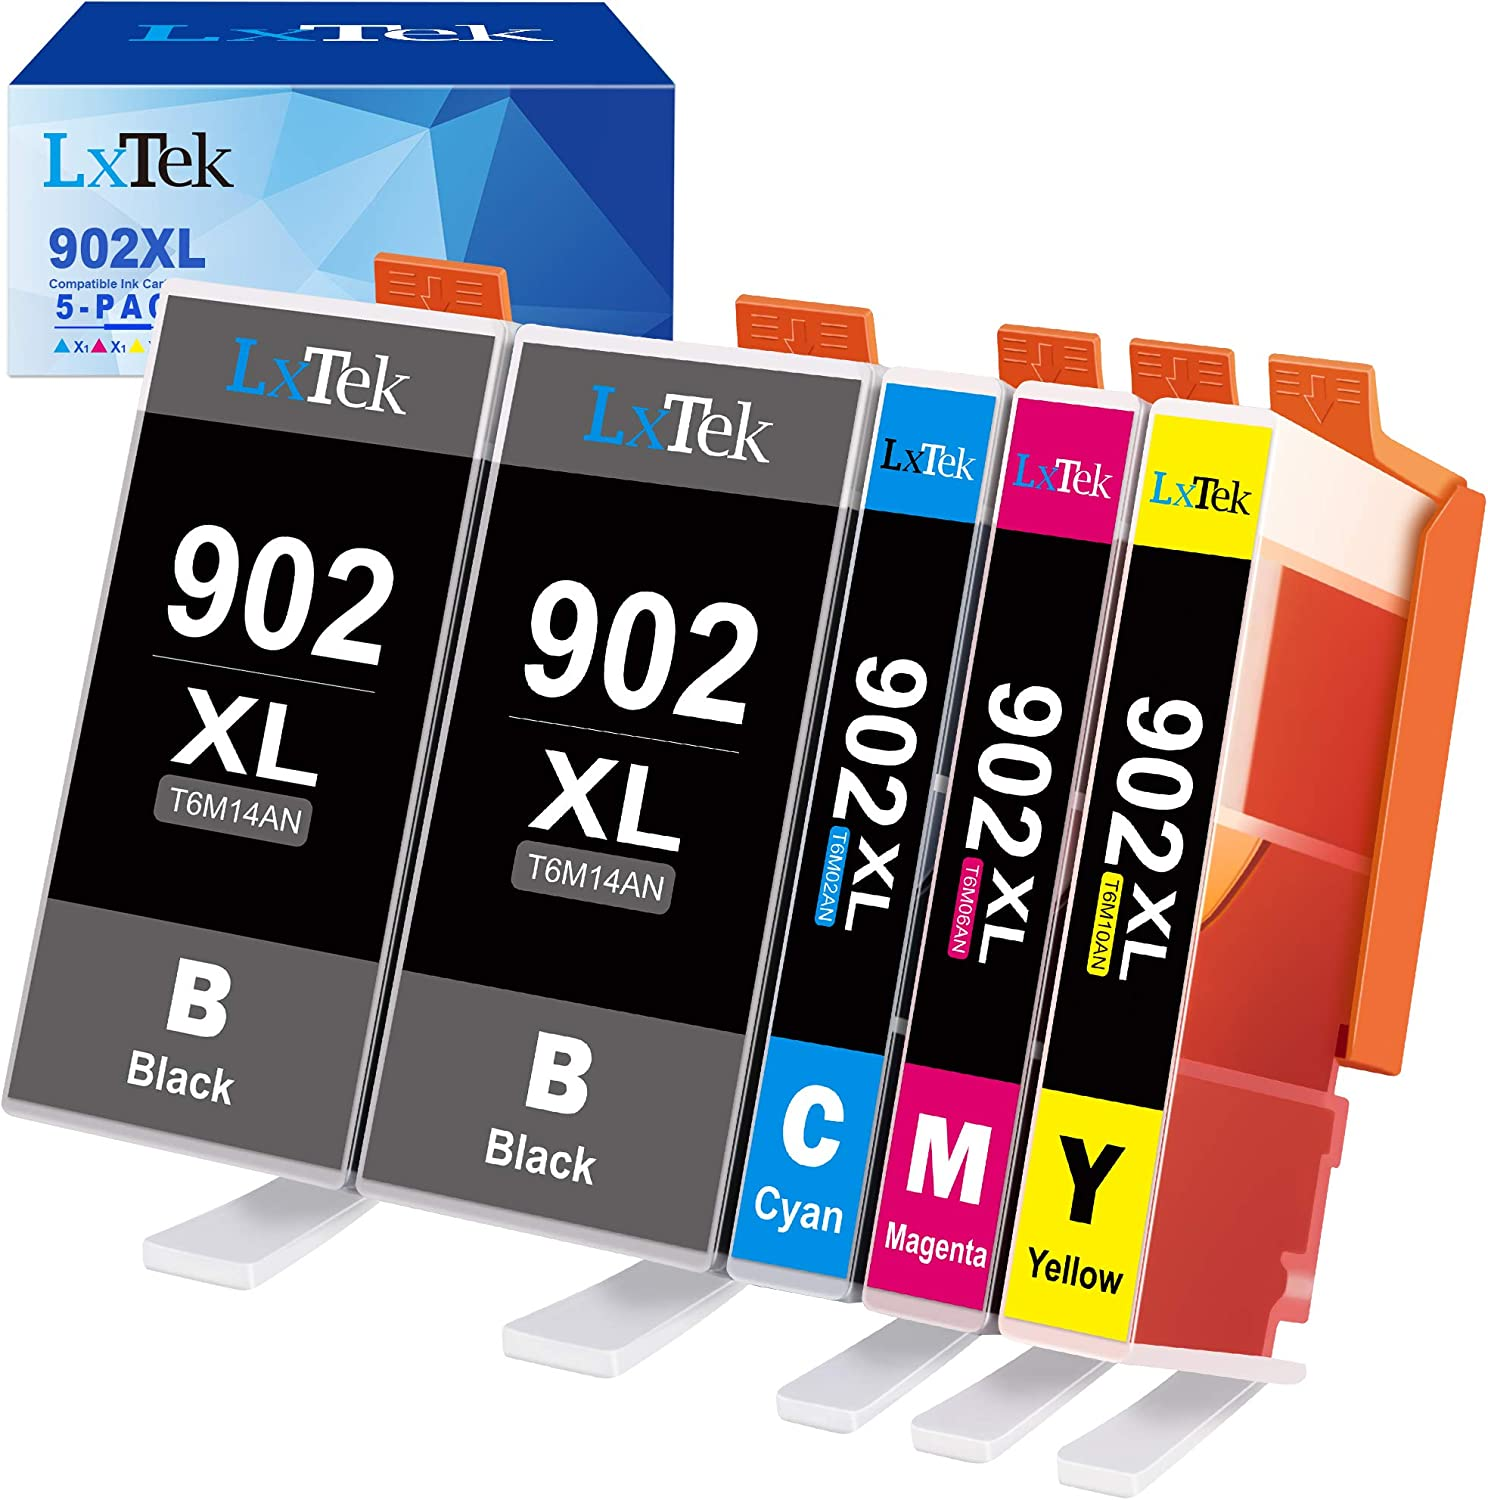 LxTek Compatible Ink Cartridge Replacement for HP 902 XL 902XL to use with Officejet 6978 6954 6962 6968 6975 Printers (5 Pack)